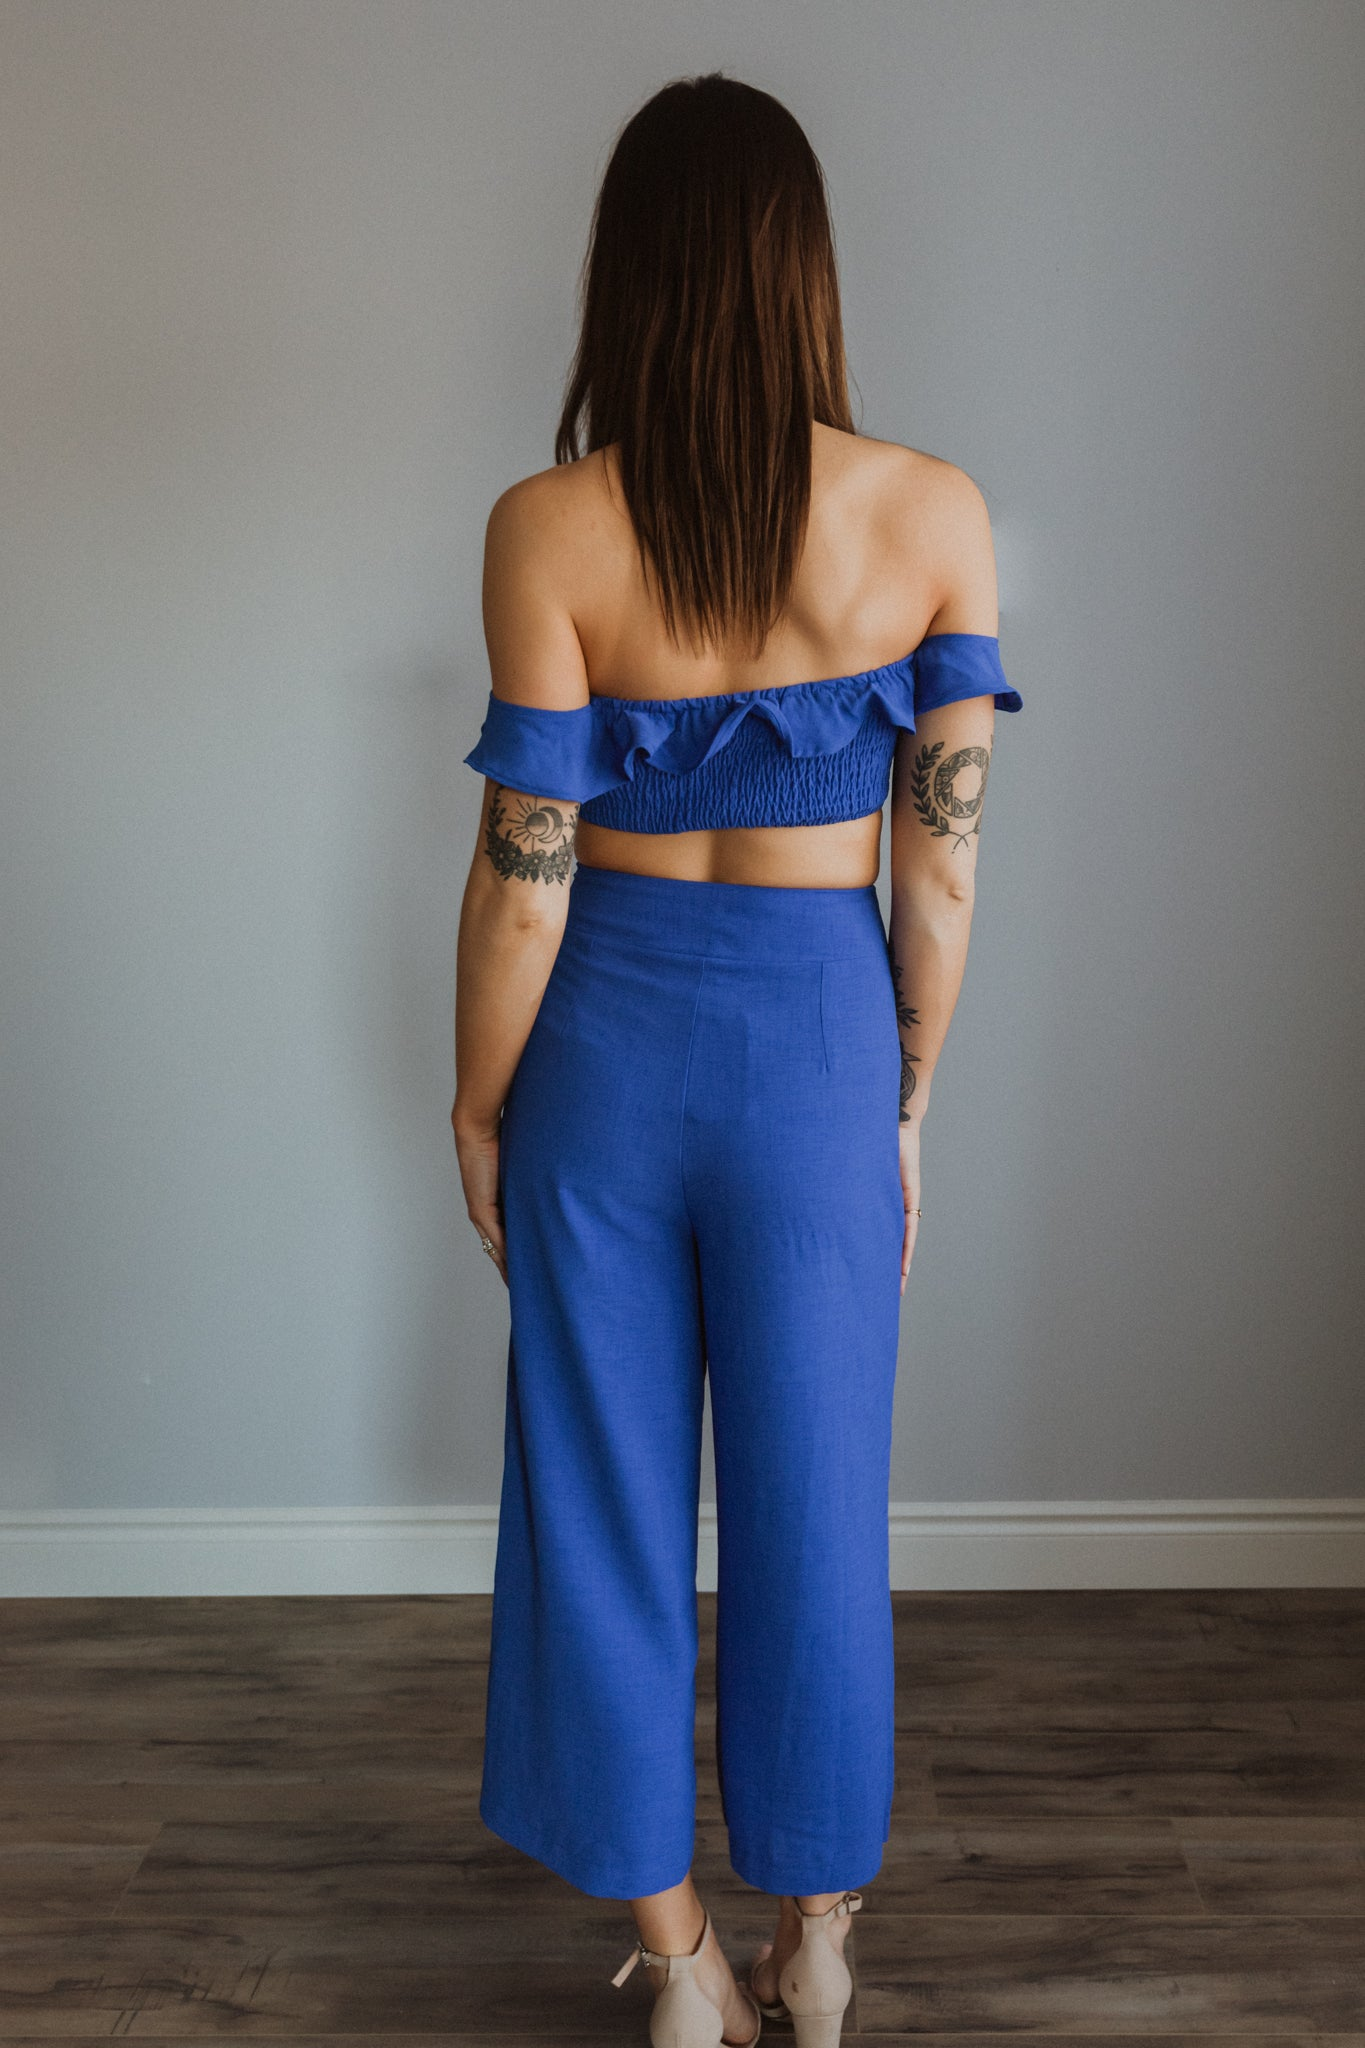 Those Ocean Eyes Crop Top and Pants Set / FINAL SALE